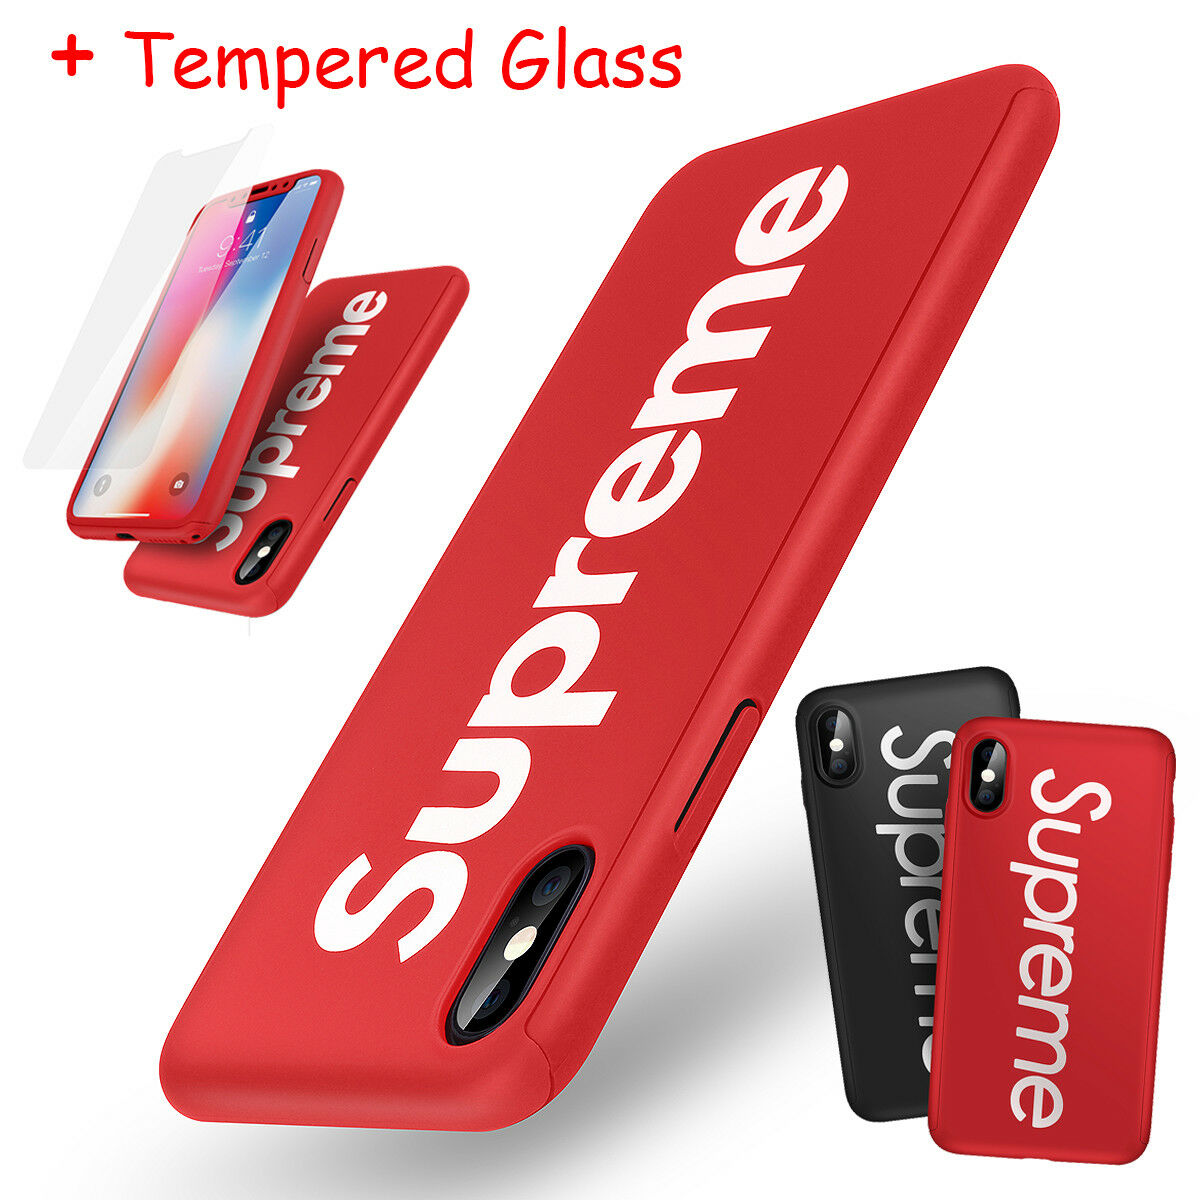 Supreme Iphone X 6s 7 8 Plus 360 Full Protection Hard Case Cover Xiaomi Redmi Note 5 Pro Hardcase Protective Tempered Glass 1 Of 12free Shipping